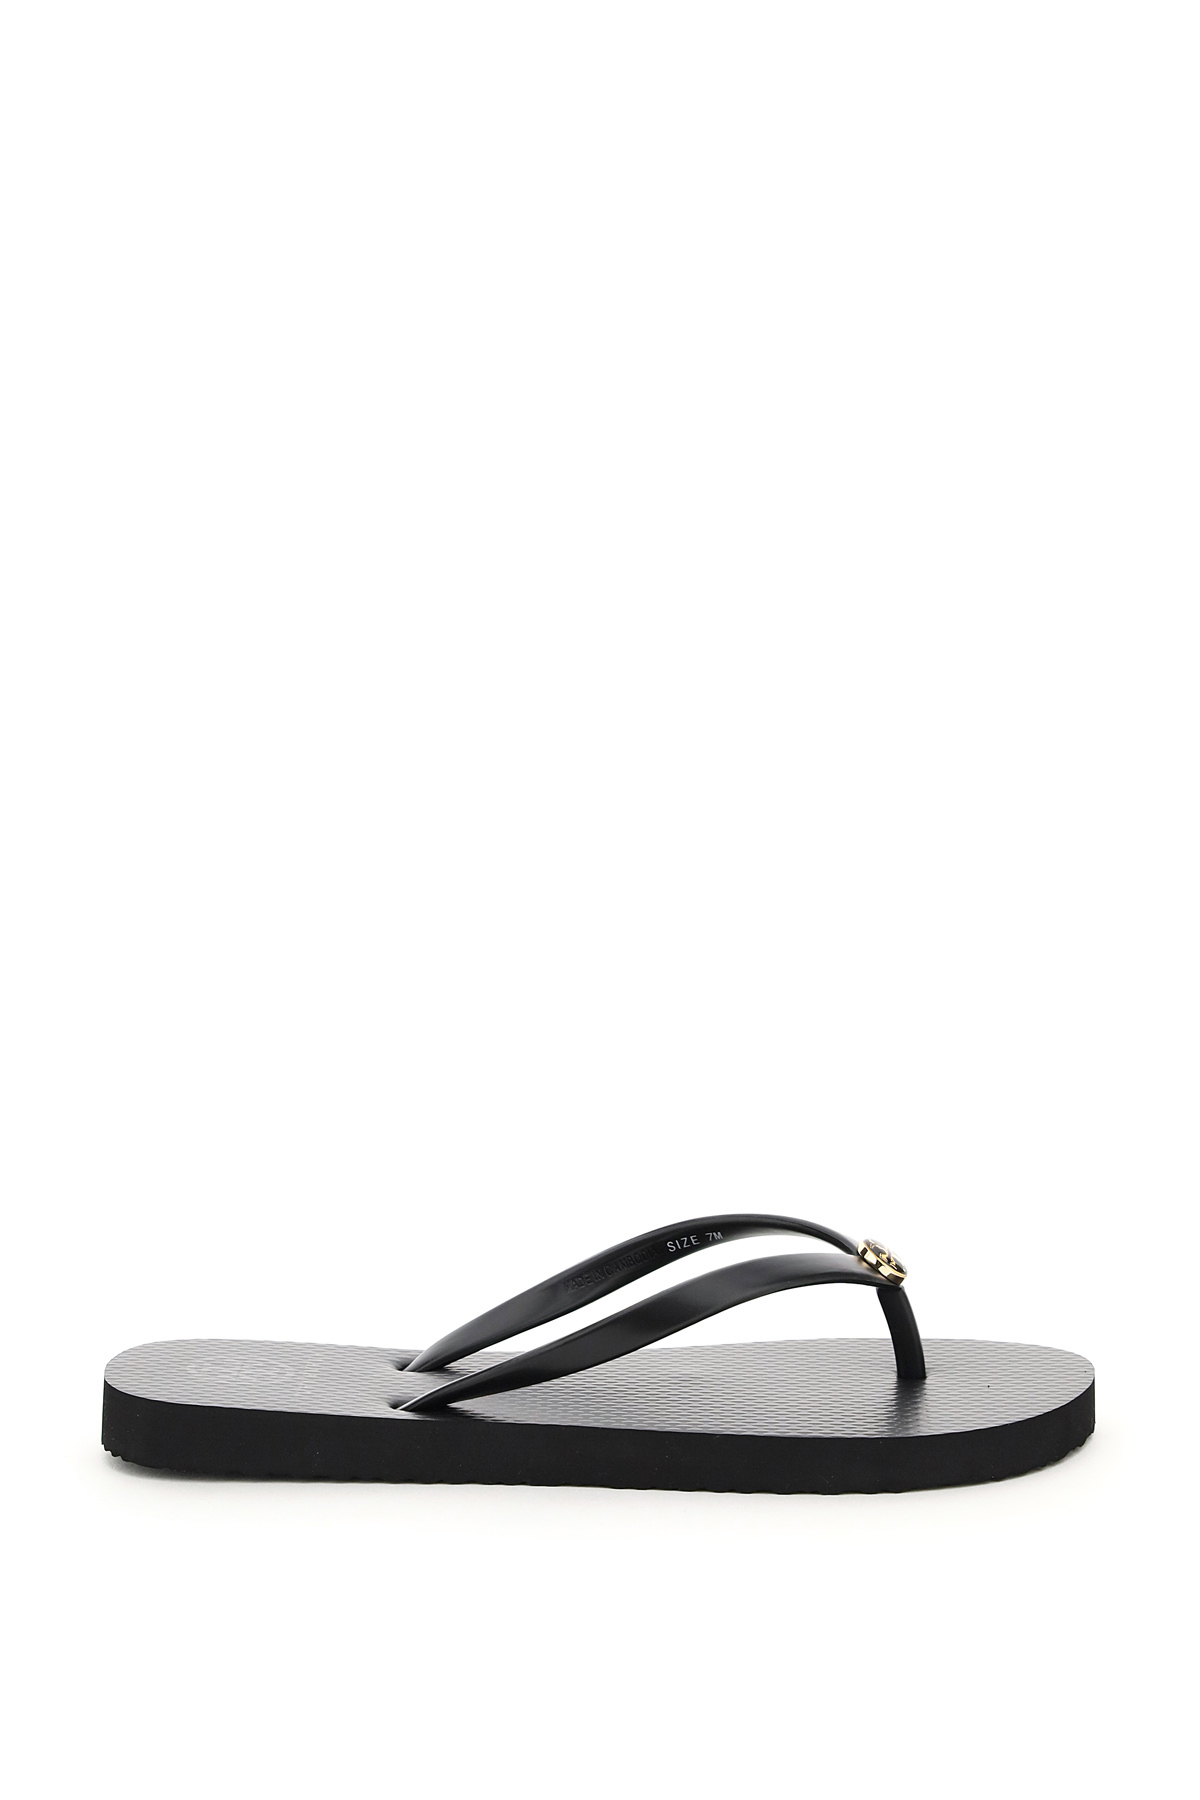 TORY BURCH RUBBER FLIP FLOPS 6 Black